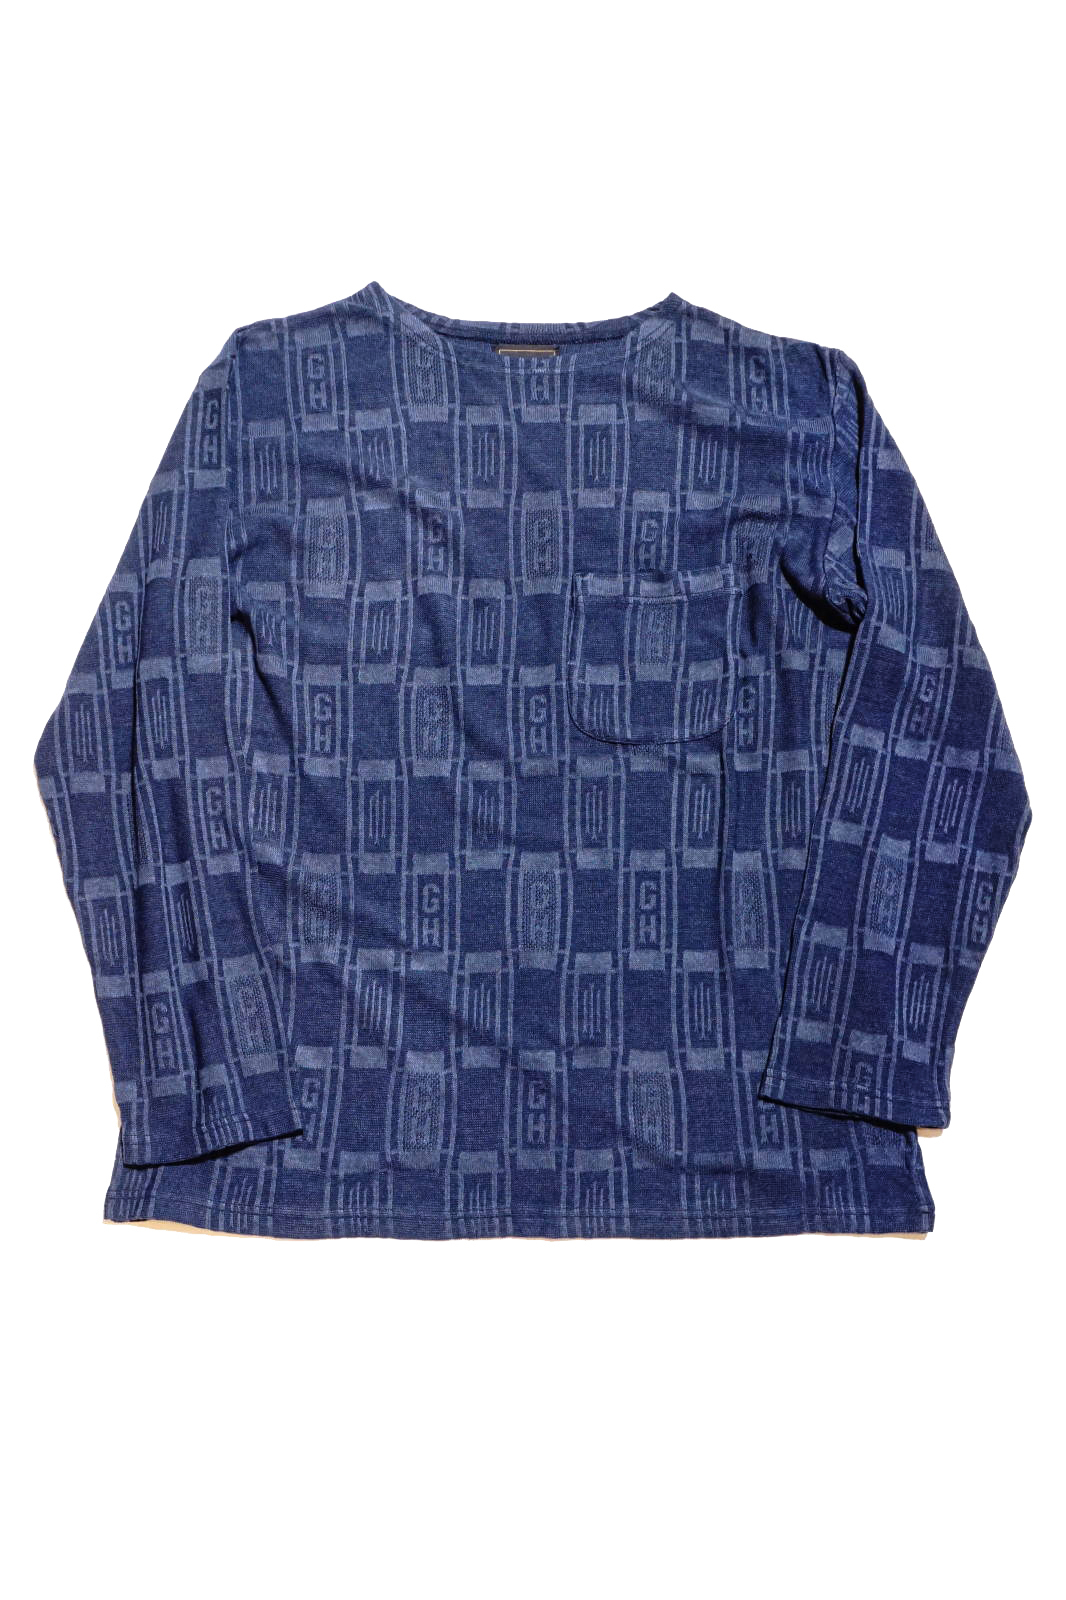 BY GLAD HAND EMPIRE GLAD - L/S BOAT NECK NAVY